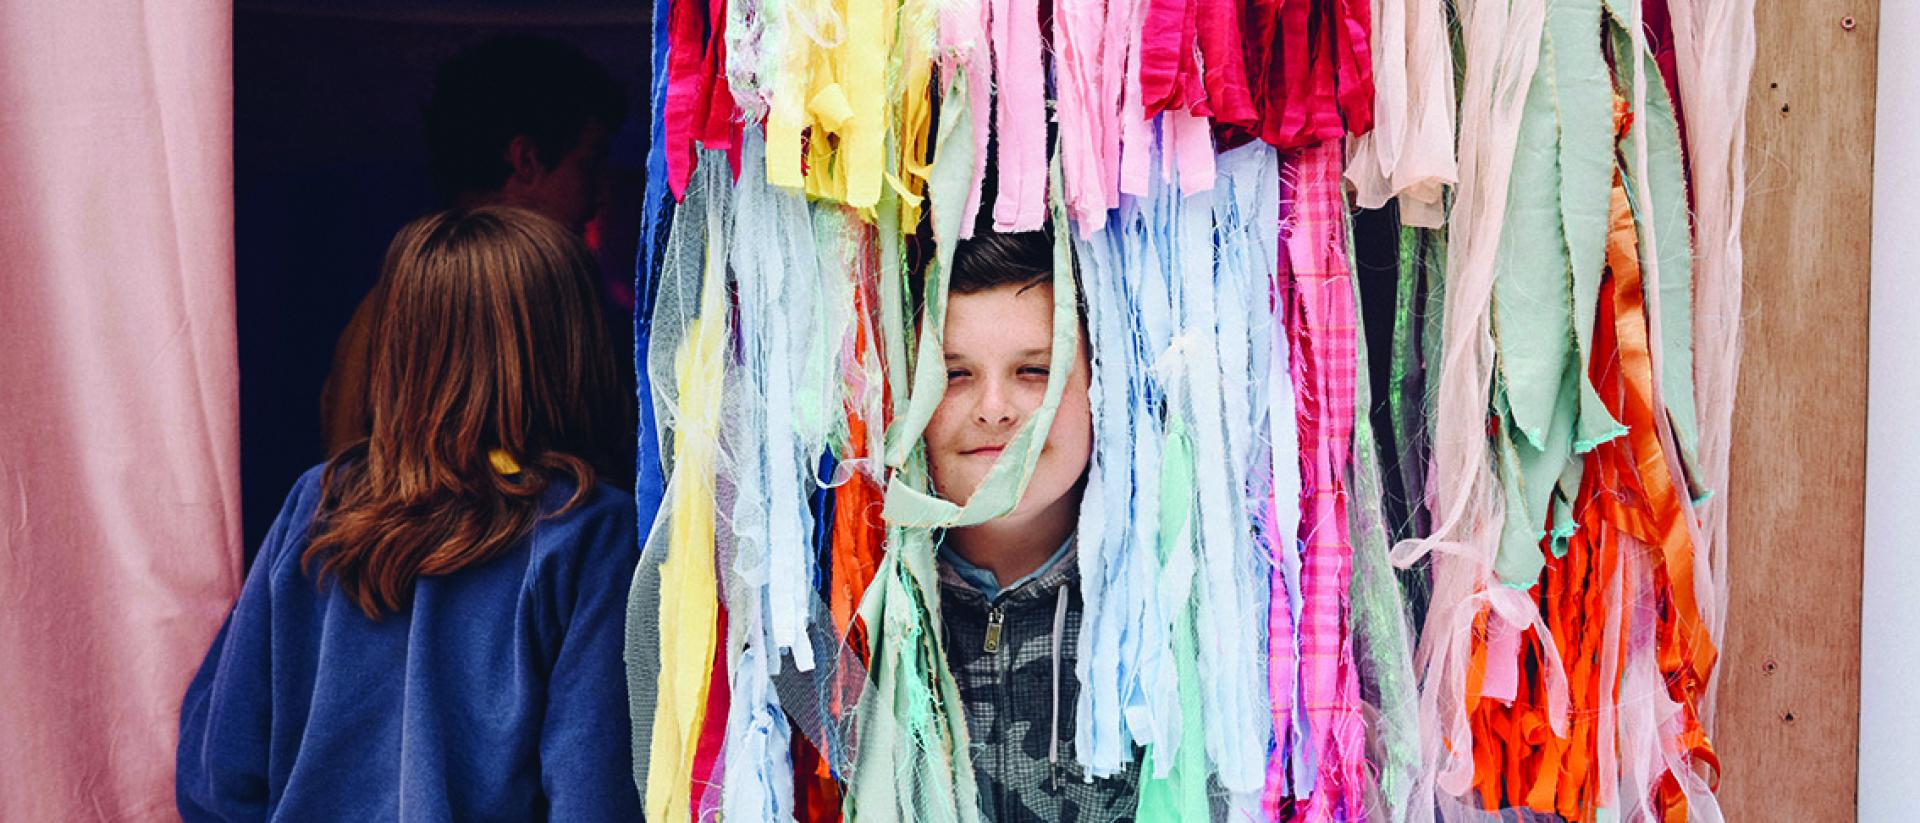 Children playing with colourful rags